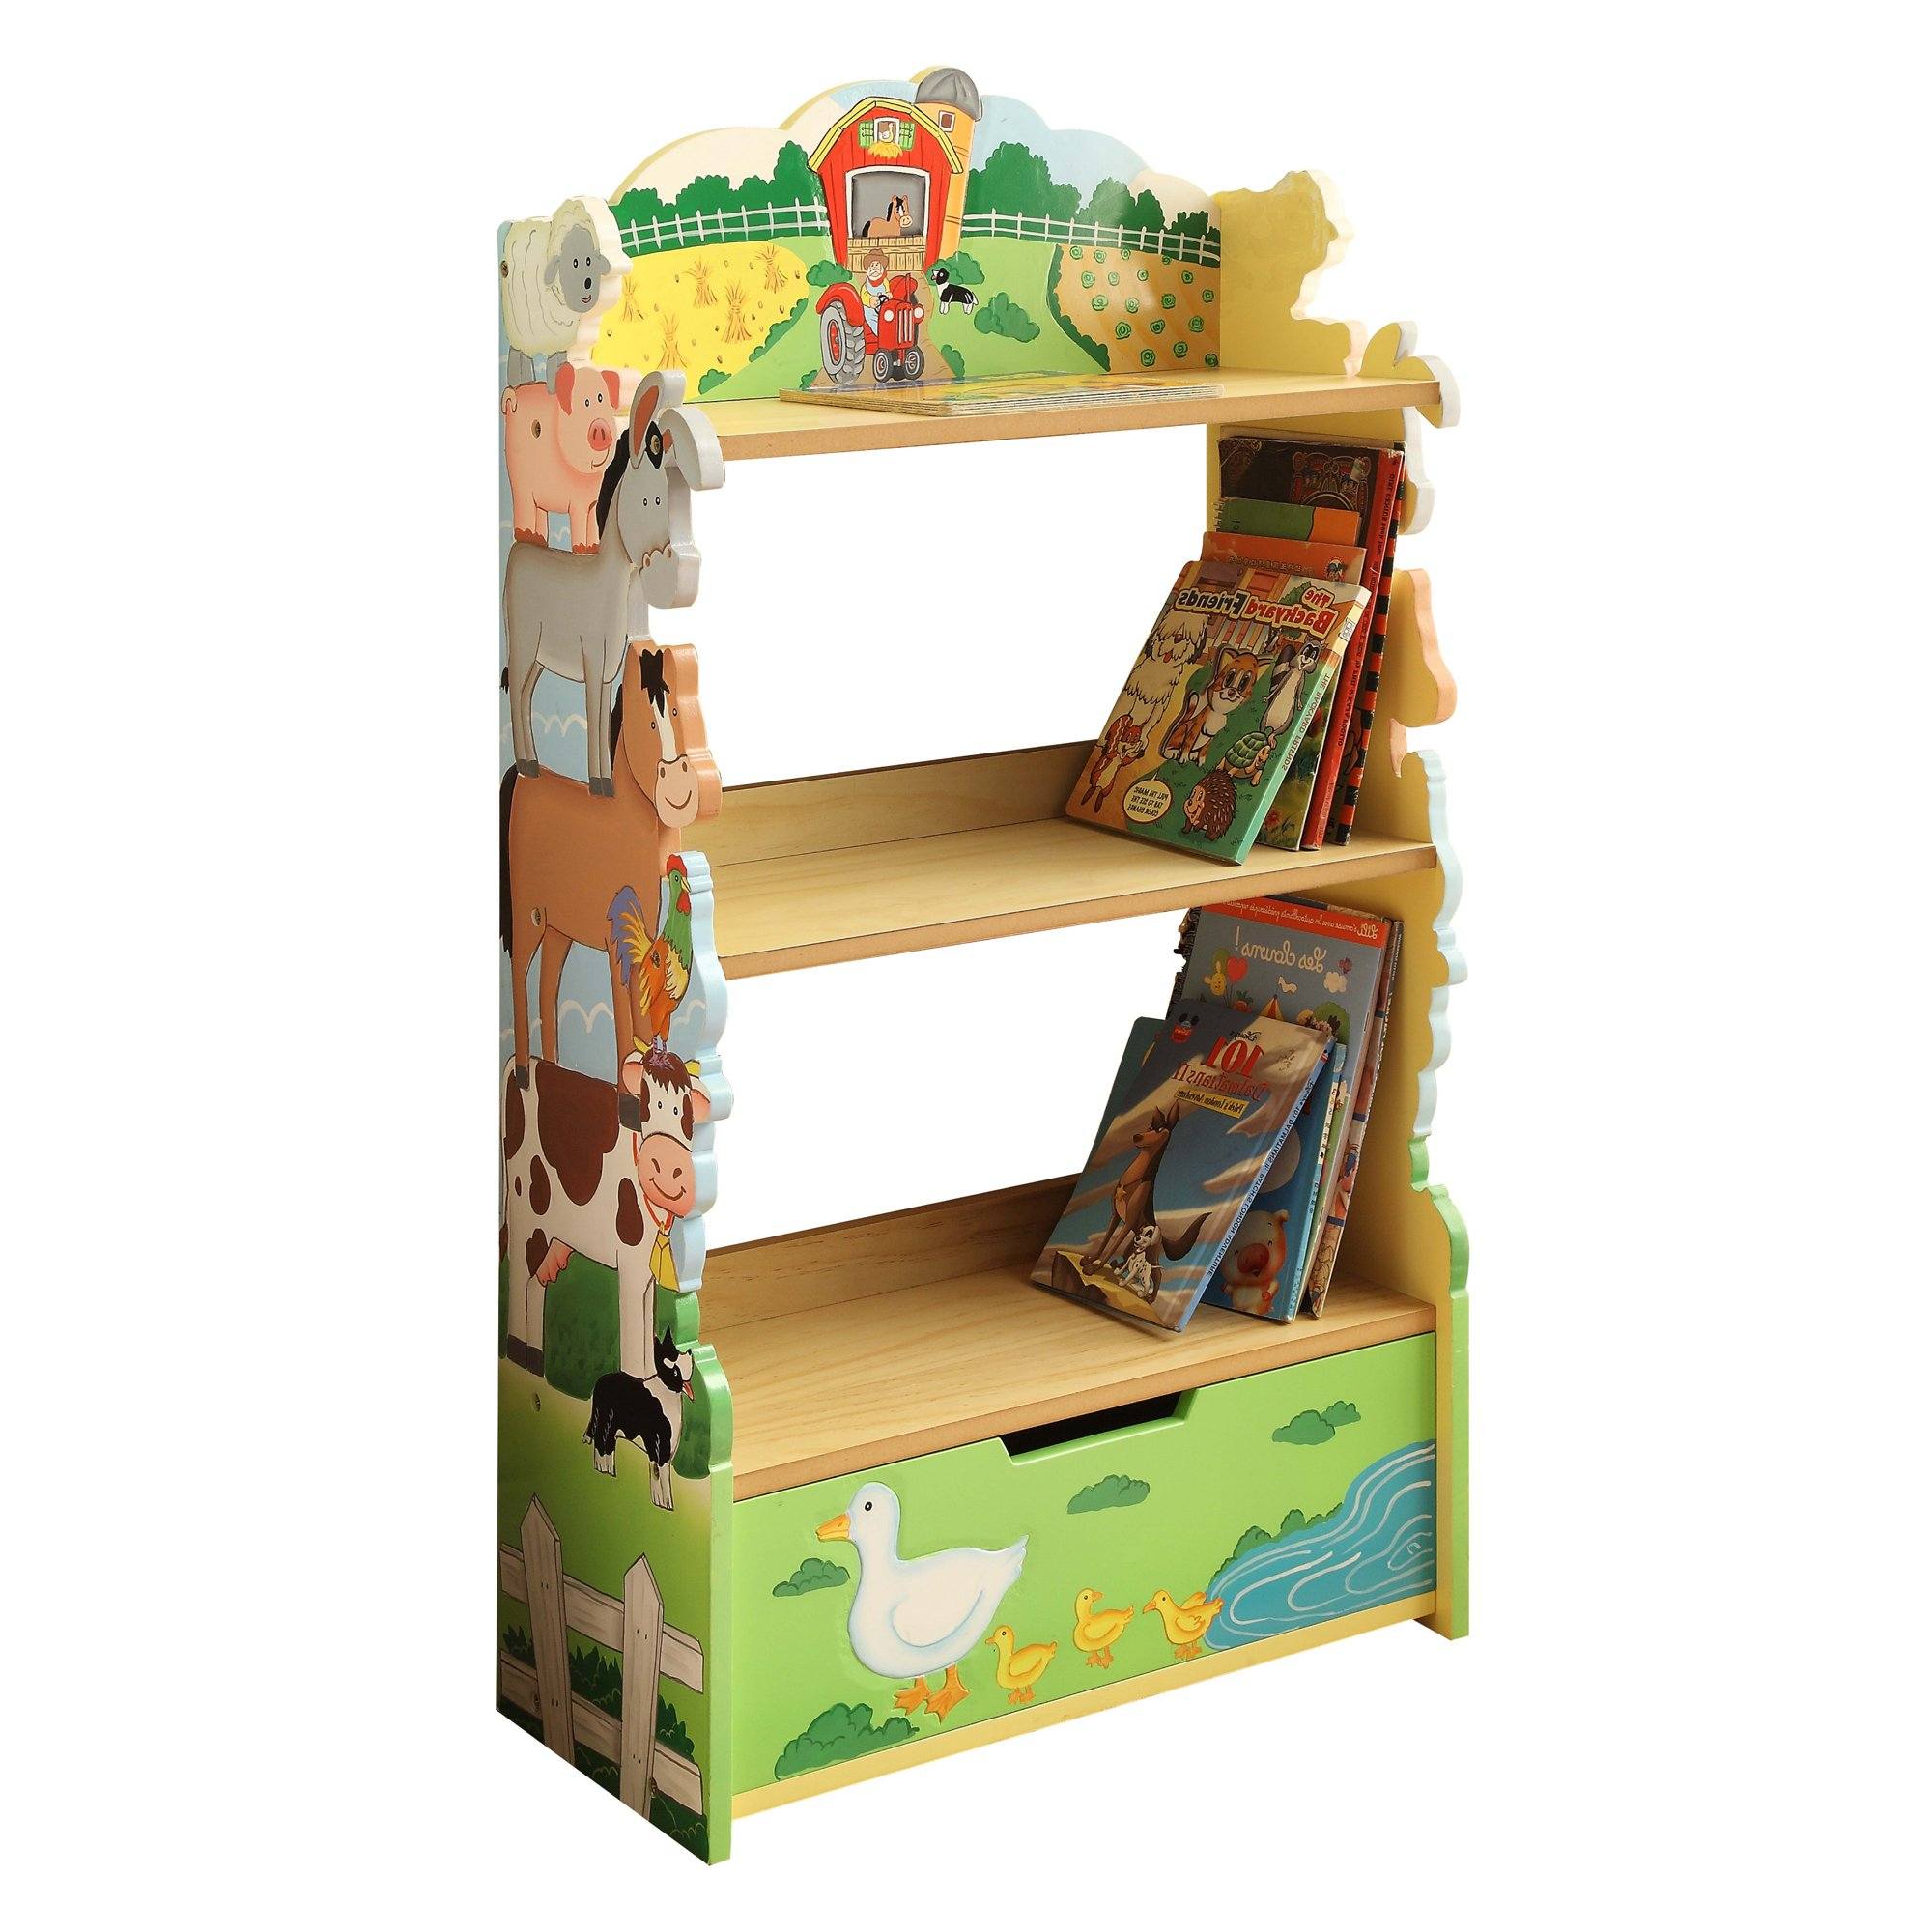 Fantasy Fields - Happy Farm Animals Thematic Kids Wooden Bookcase with Storage | Imagination Inspiring Hand Crafted & Hand Painted Details | Non-Toxic, Lead Free Water-based Paint by Teamson Design Corp